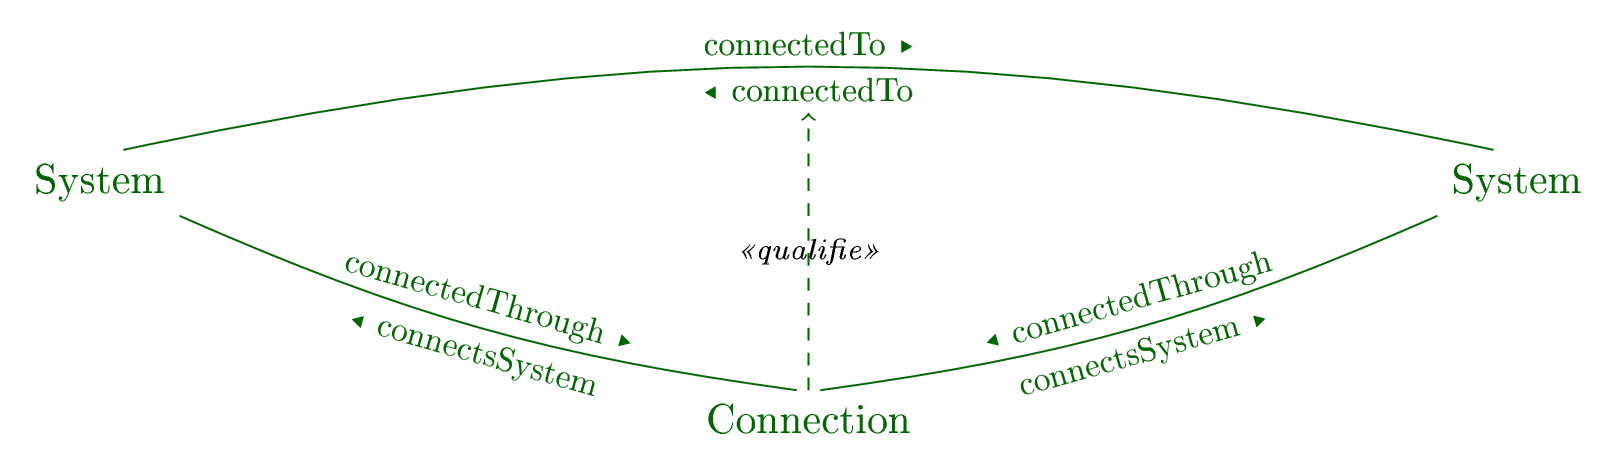 Connections of systems